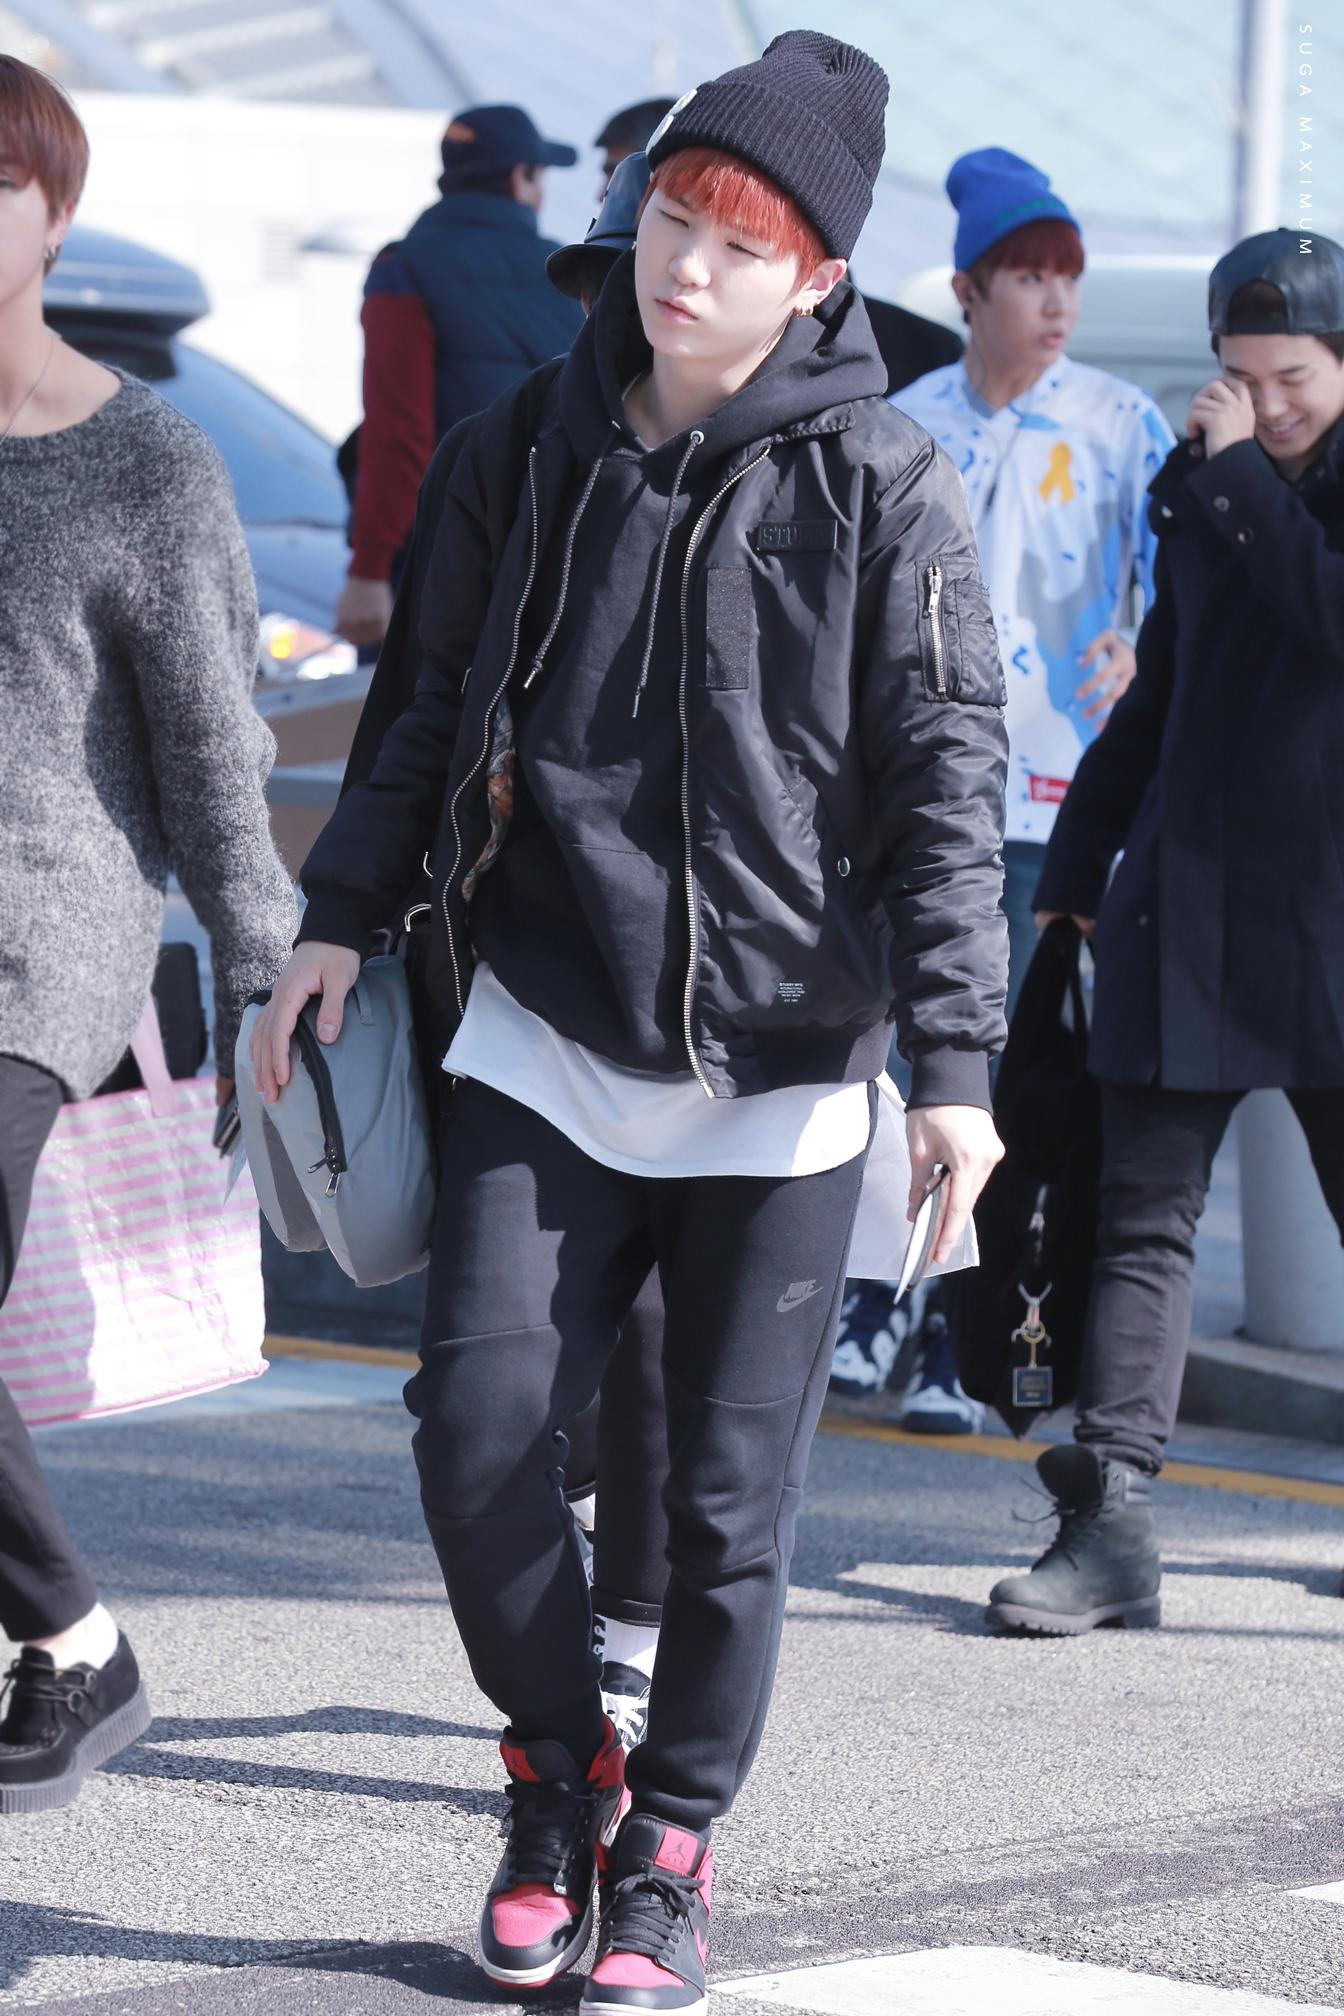 Picture Fansitesnap Bts At Incheon Airport Going To